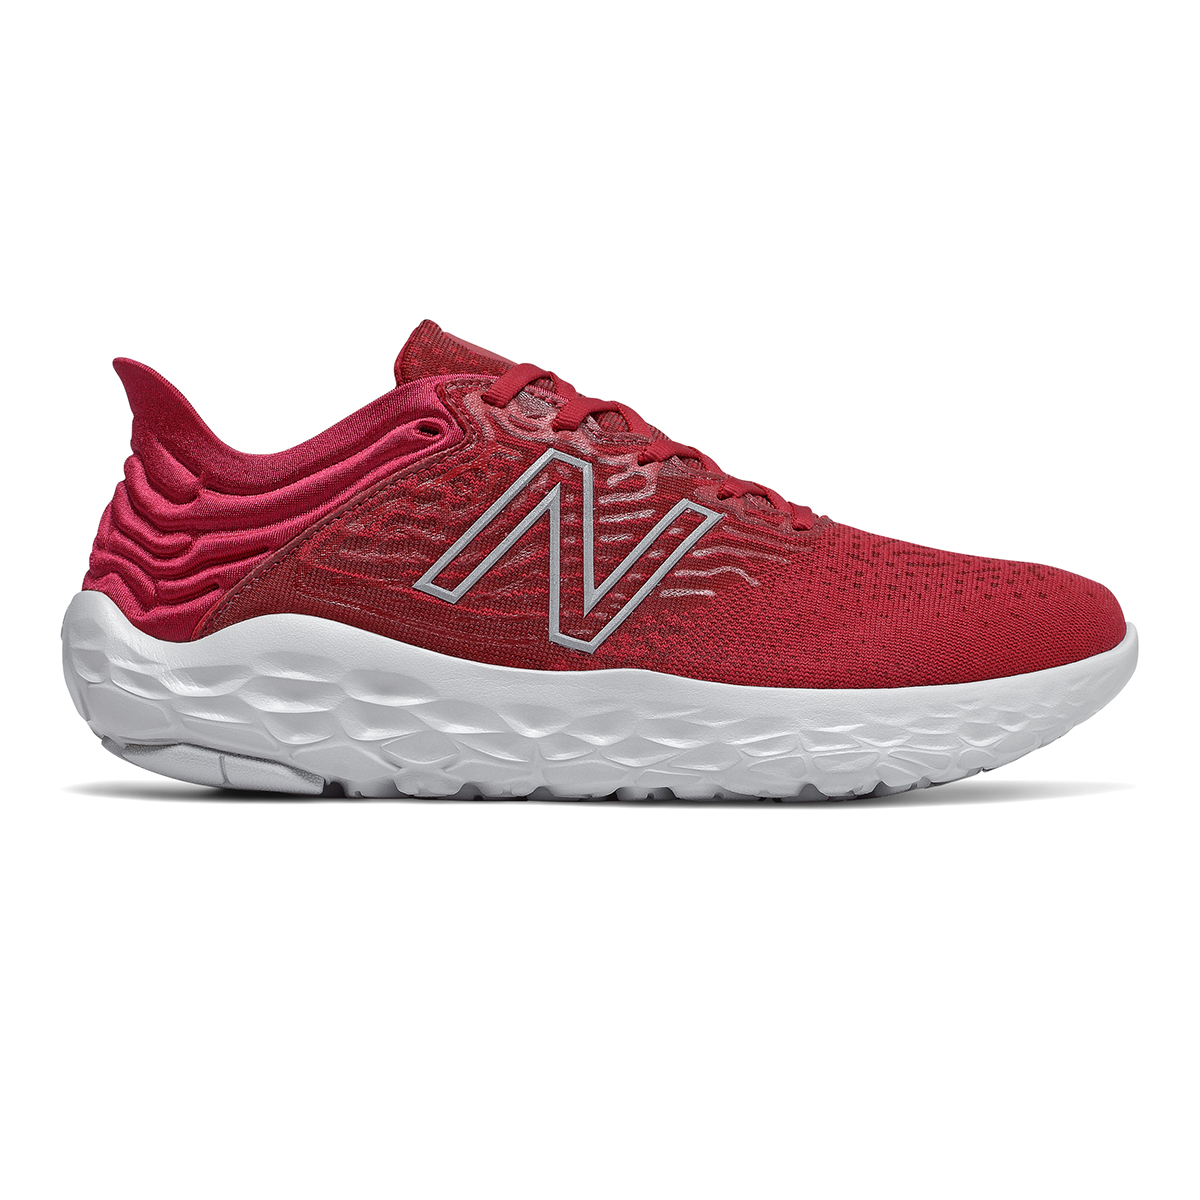 Men's New Balance Beacon V3 Running Shoe, , large, image 1